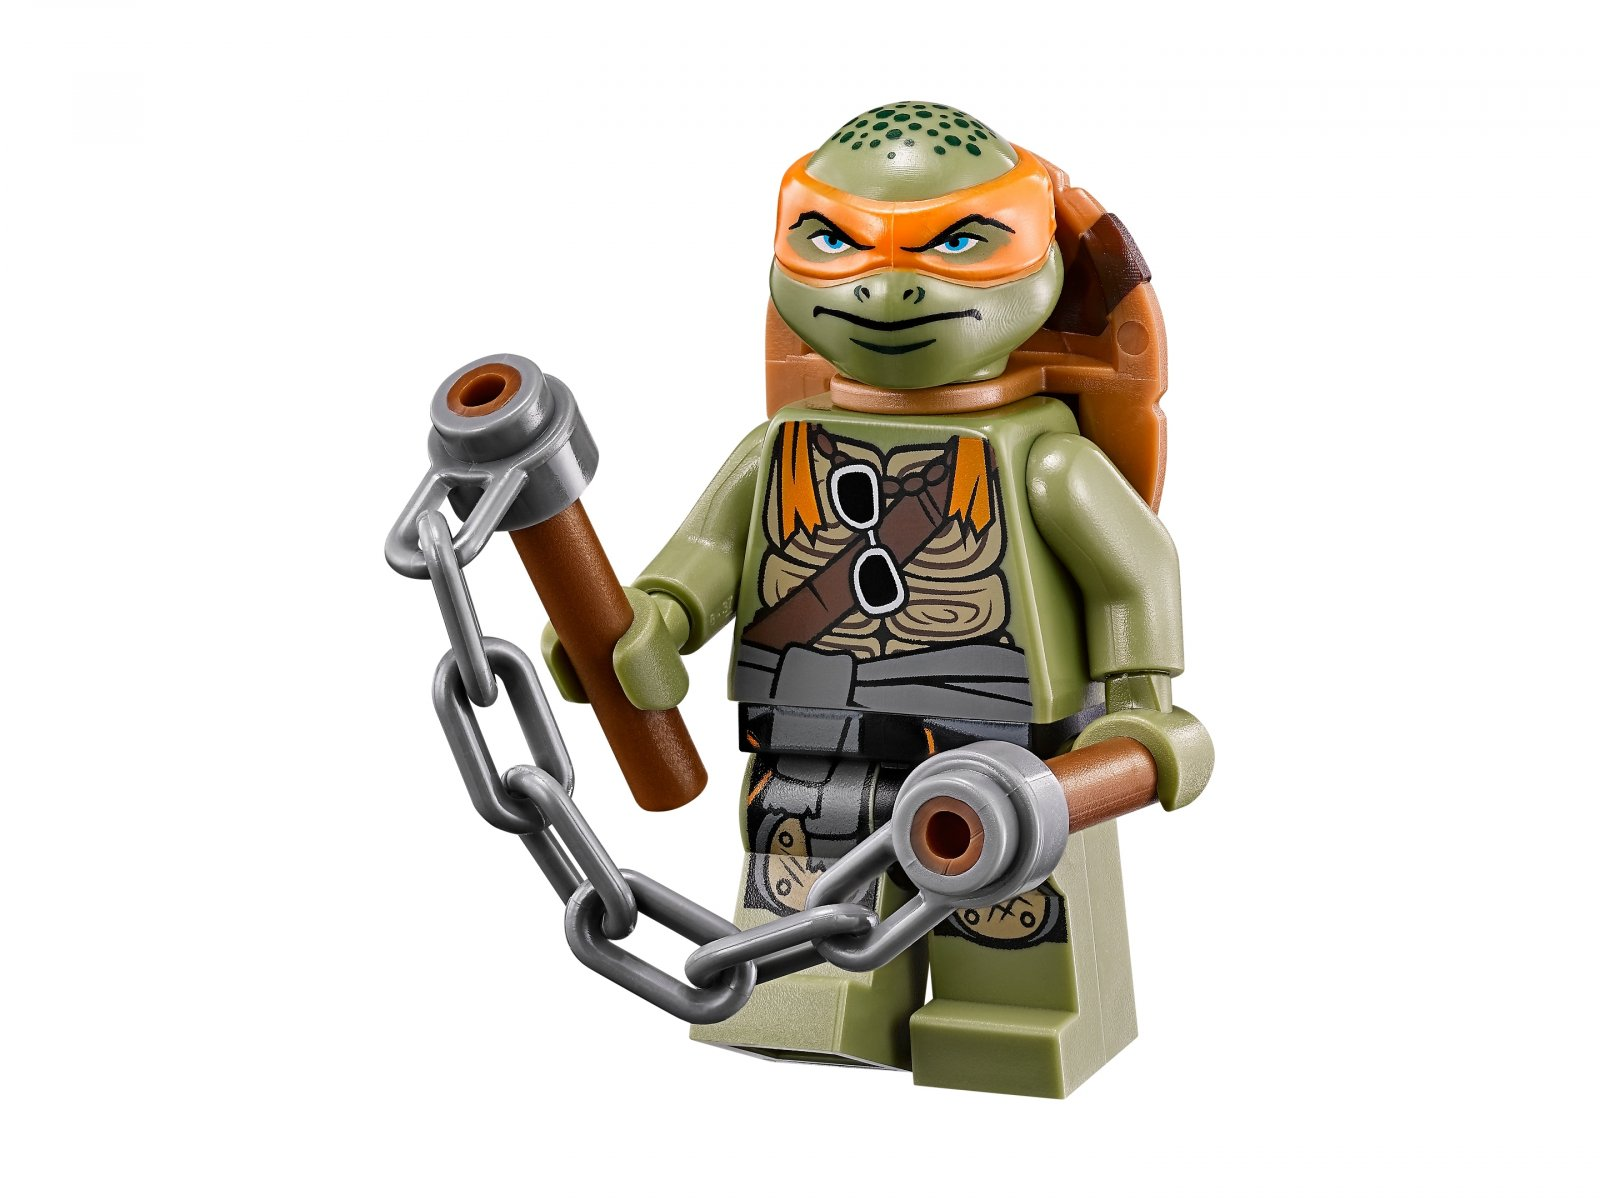 LEGO Teenage Mutant Ninja Turtles™ Furgonetka żółwi